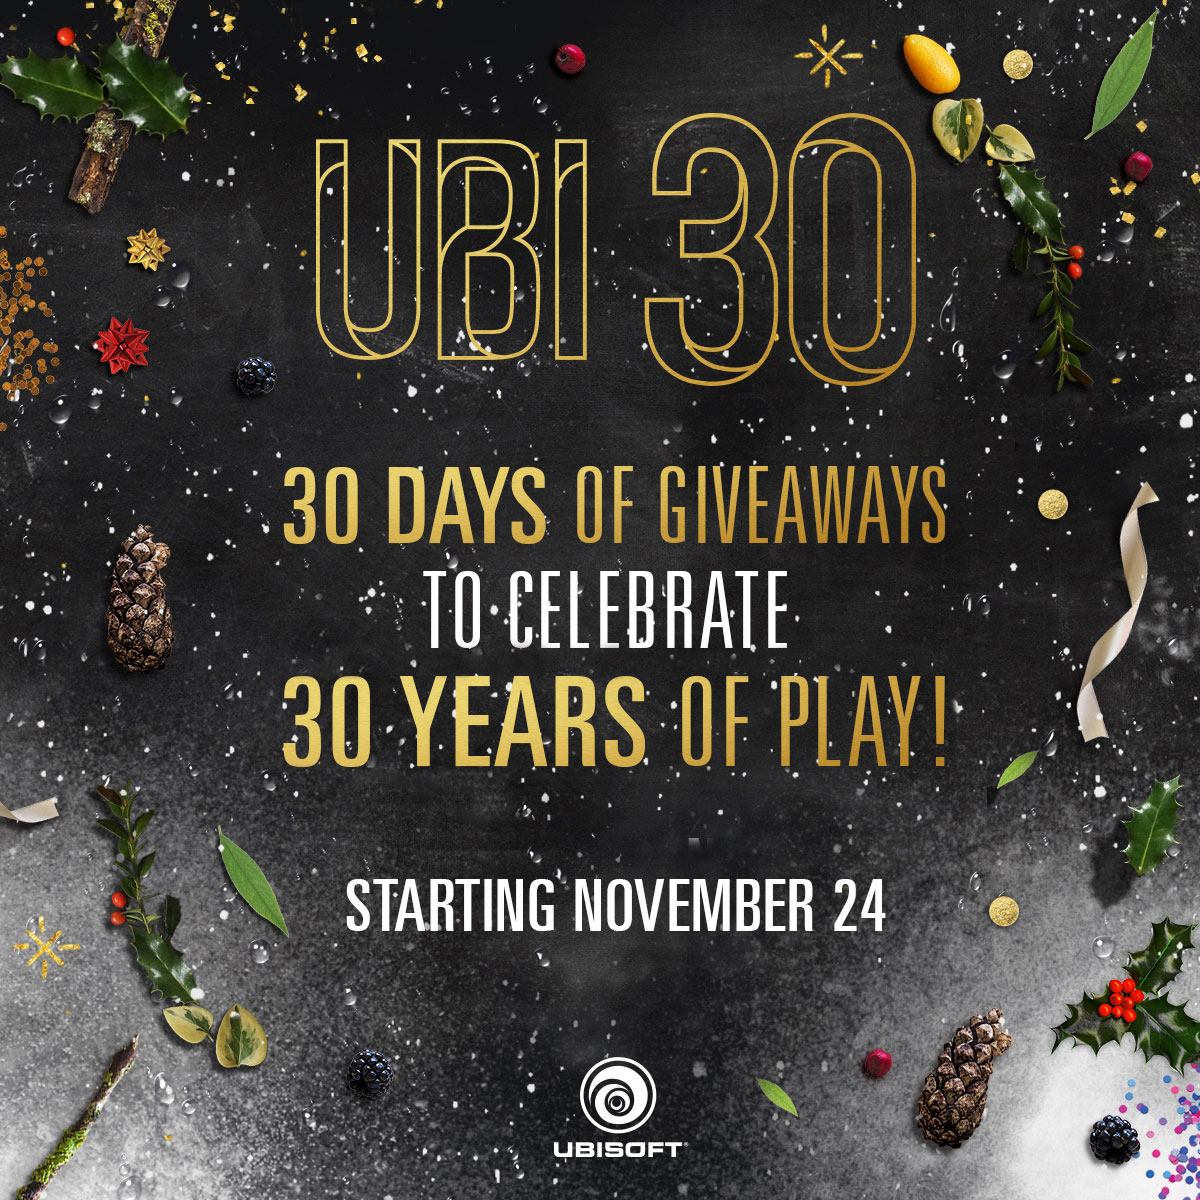 New Ubi 30 Promotion